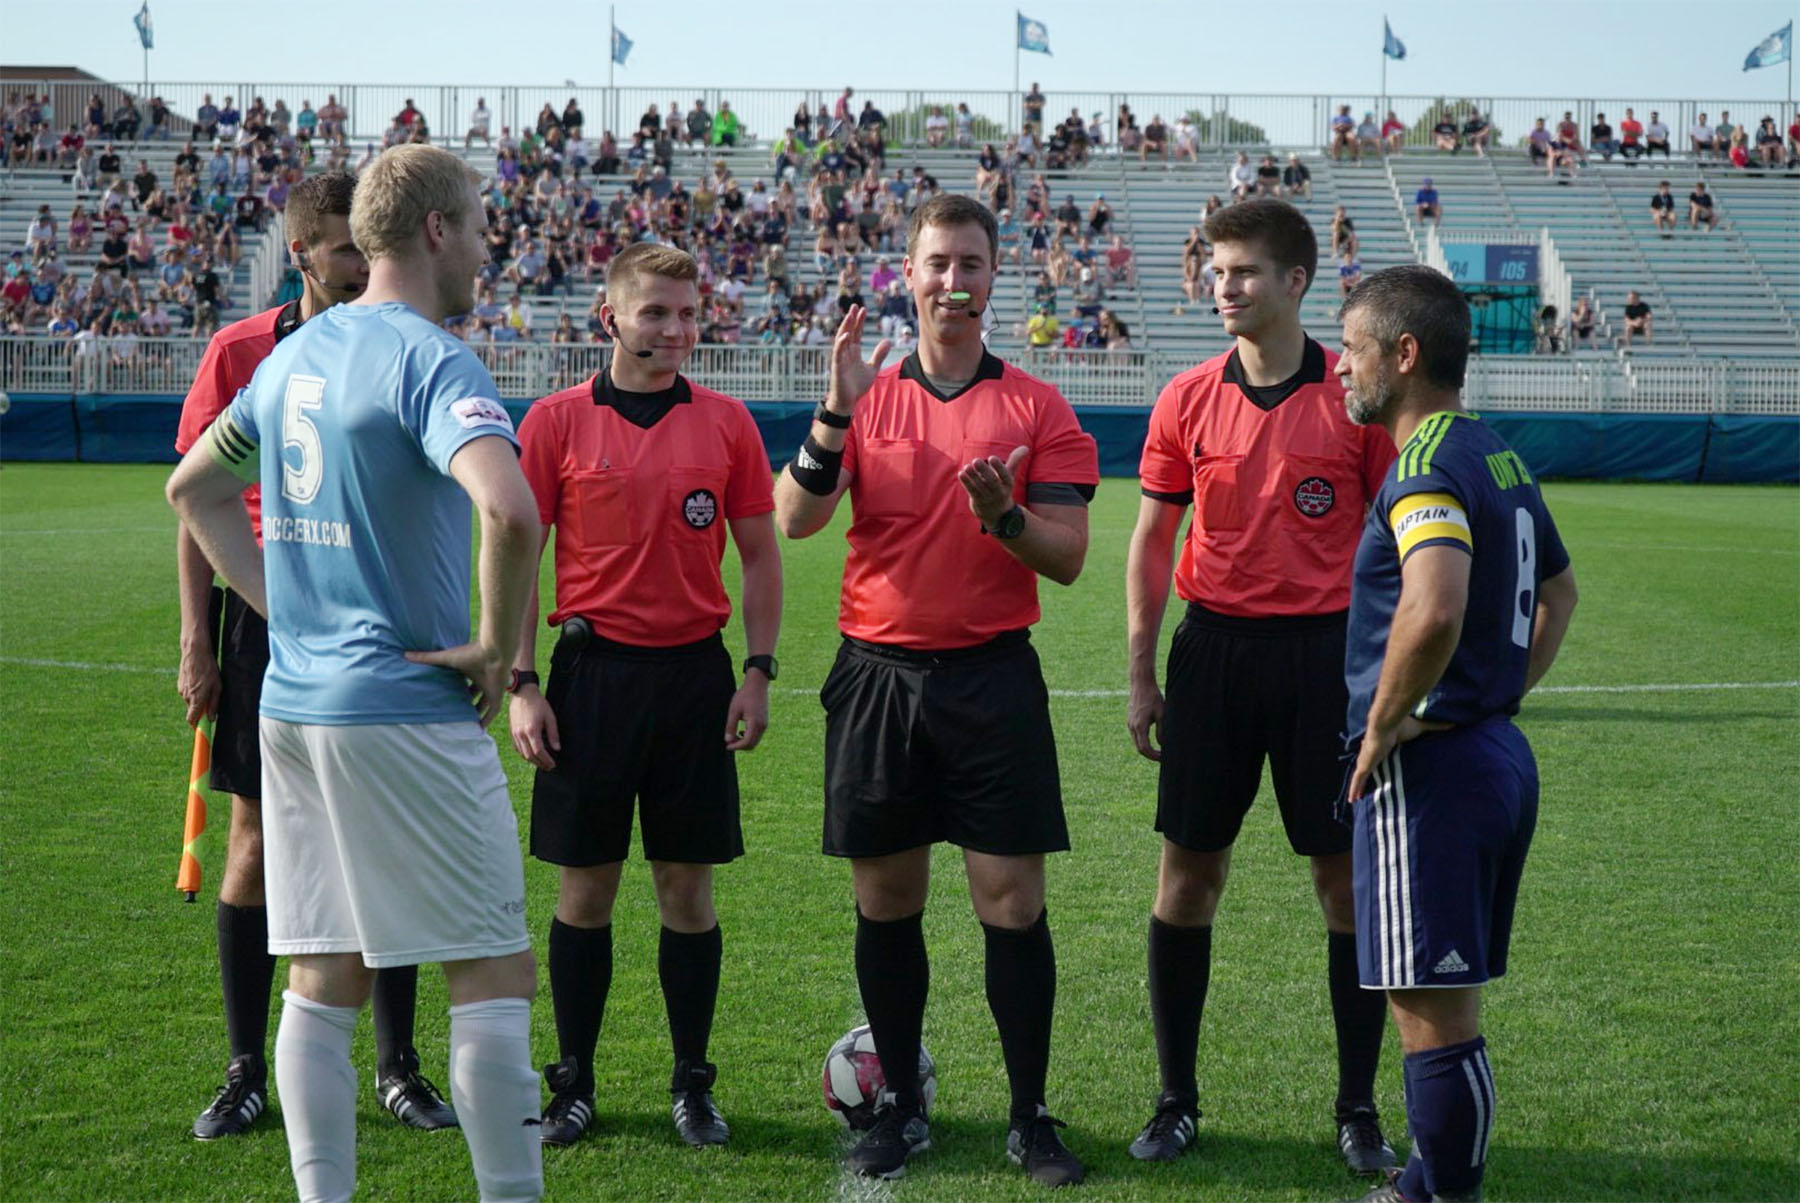 20190817_Nova_Scotia_final_coin_toss